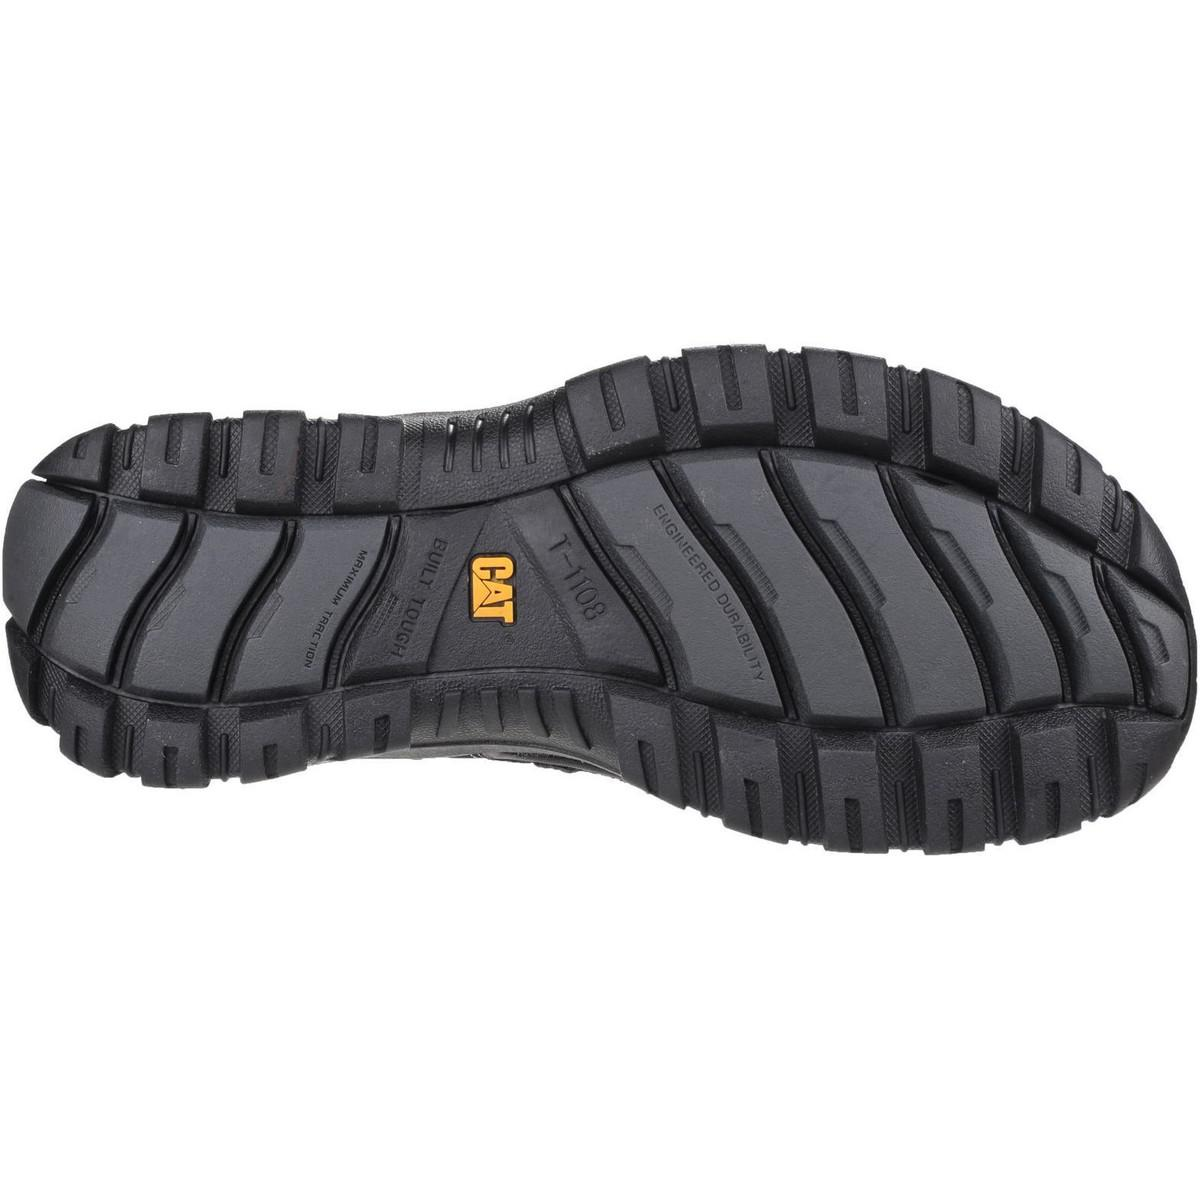 Caterpillar Synthetic Giles Sandals in Black for Men